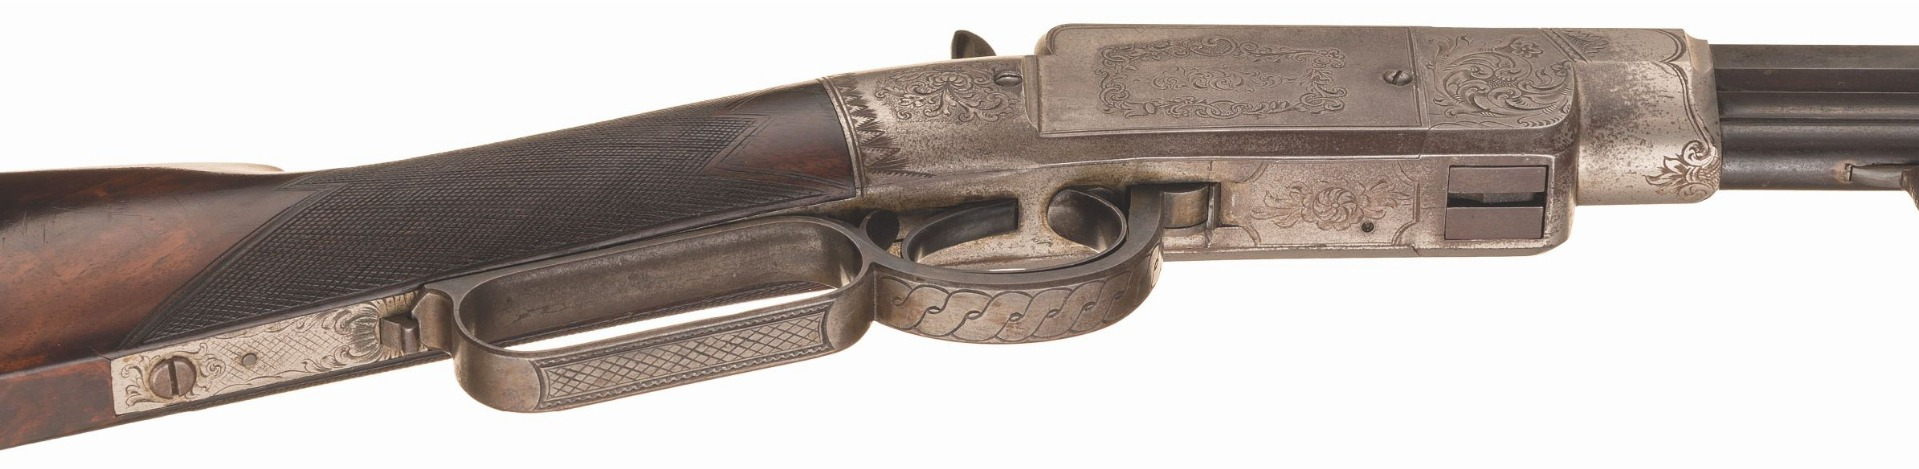 Smith & Wesson Prototype Lever Action Carbine